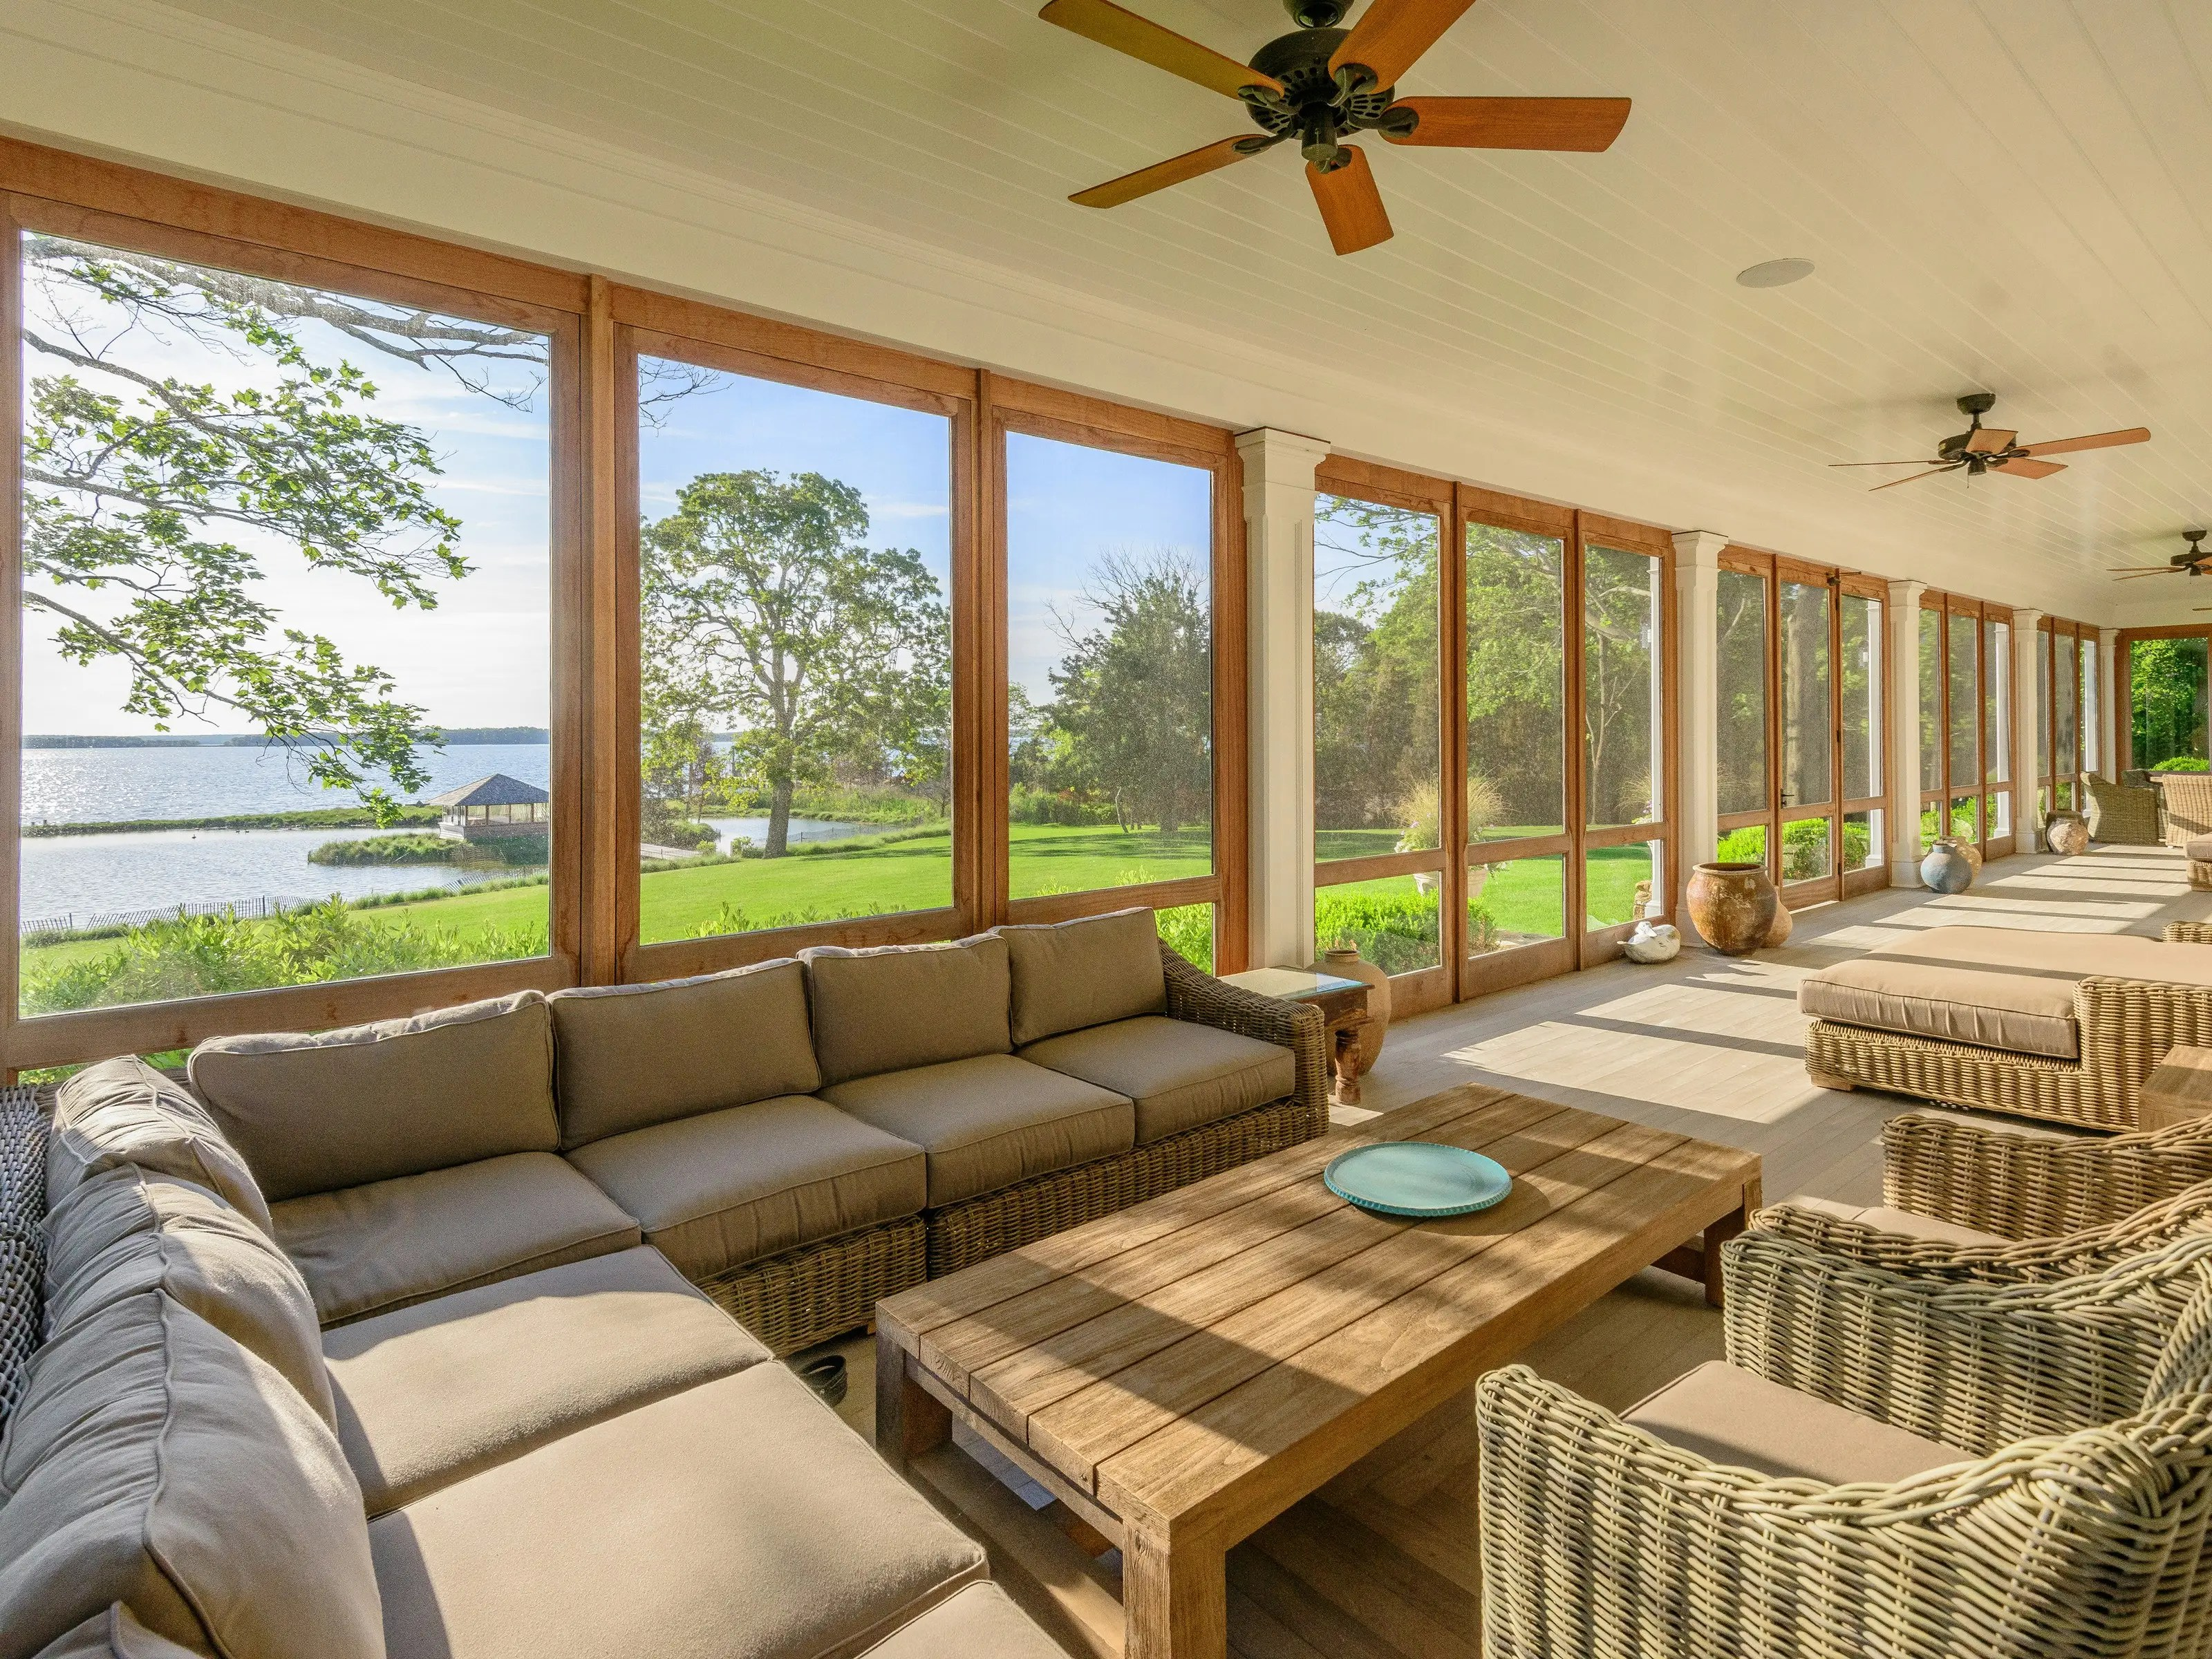 You can lounge in the vast sunroom which looks out toward the water.